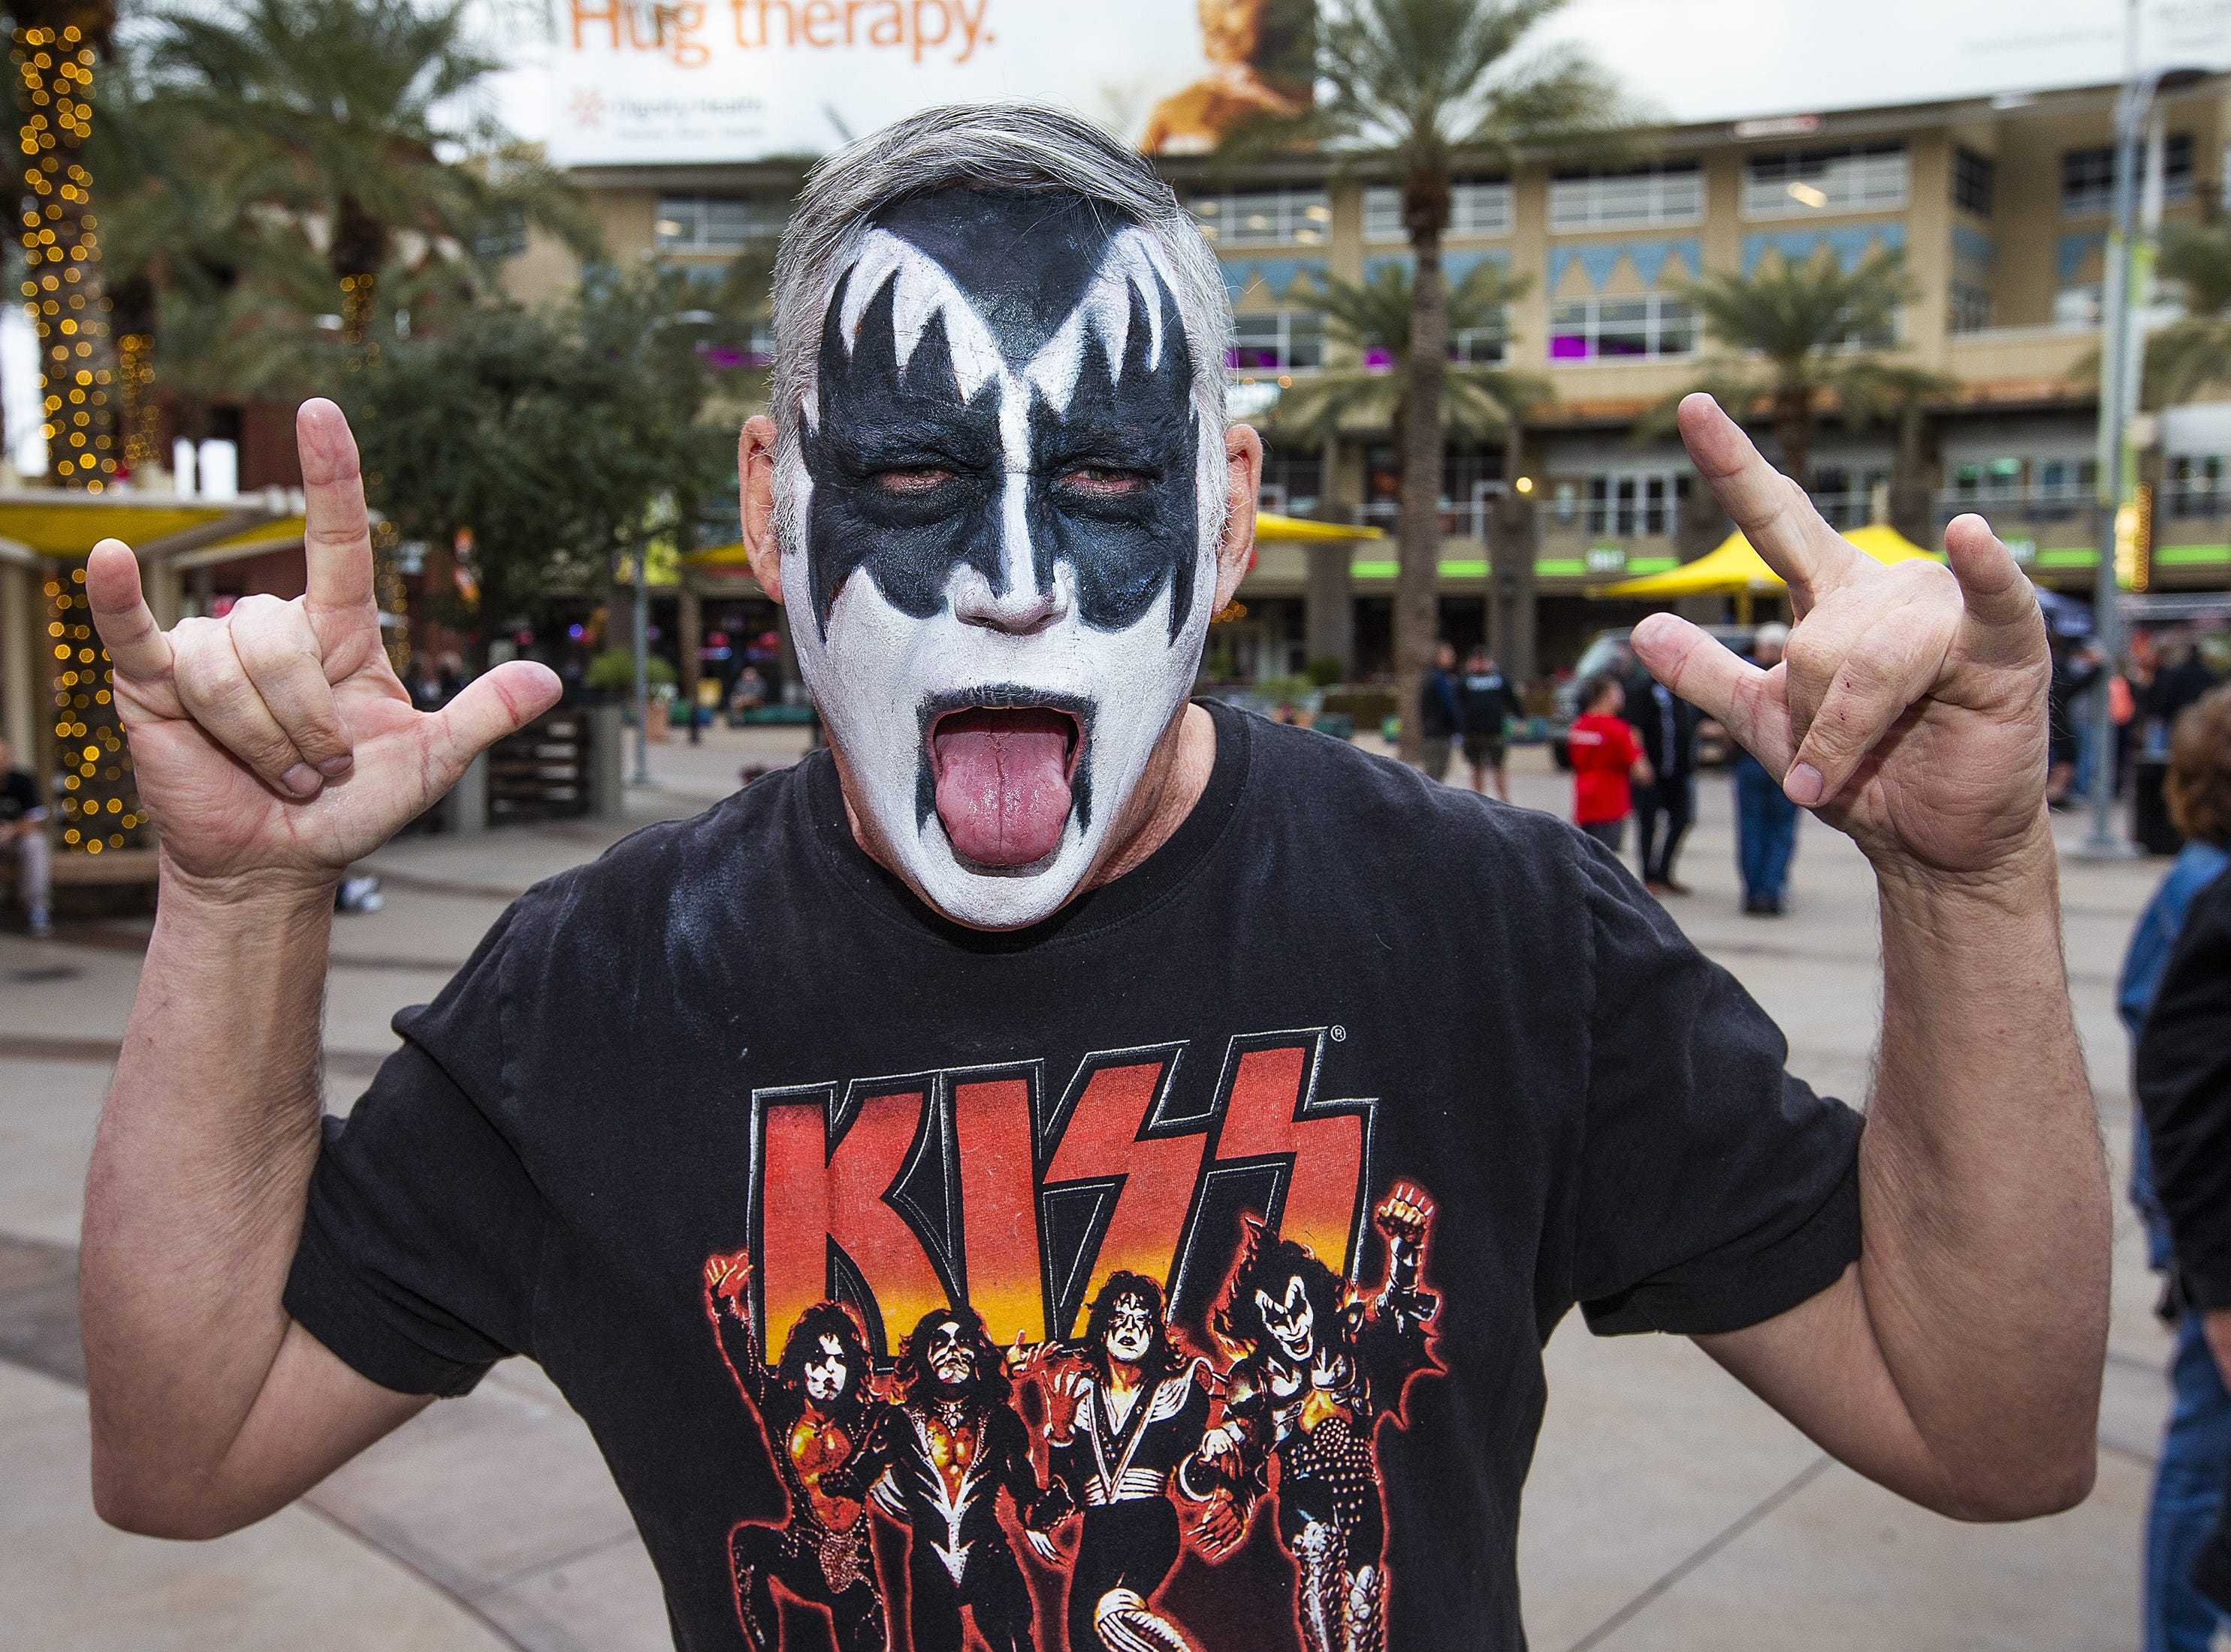 Rodger Walker, 56, of Phoenix, shows off his best KISS makeup prior to the concert by the famed group at Gila River Arena in Glendale on Wednesday, Feb. 13, 2019.  The concert was part of the End of the Road World Tour, the band's farewell to the fans.